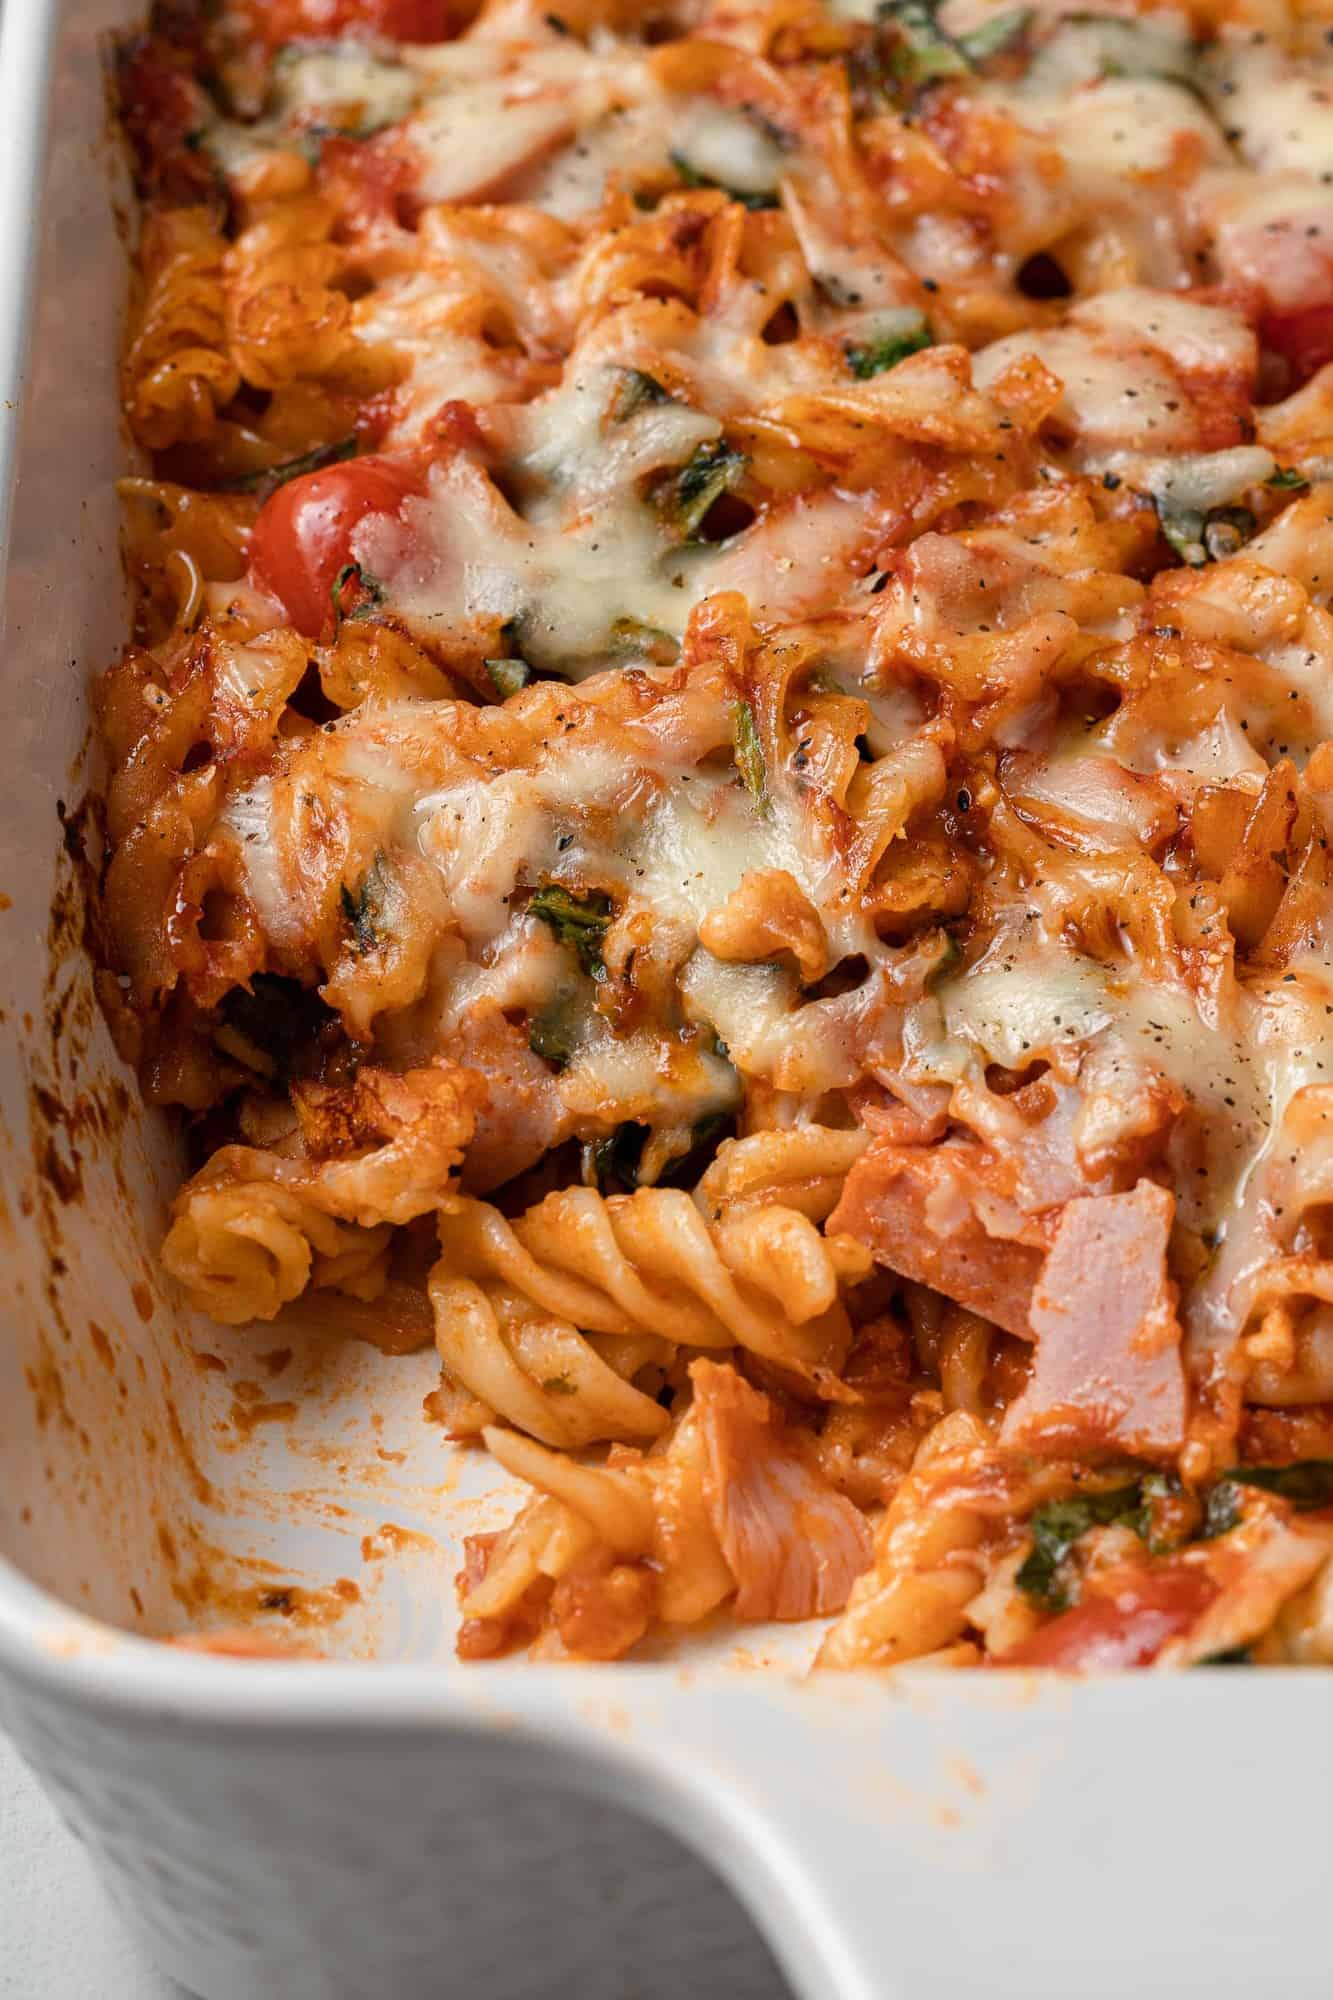 Pasta bake with a scoop taken out to show ingredients.